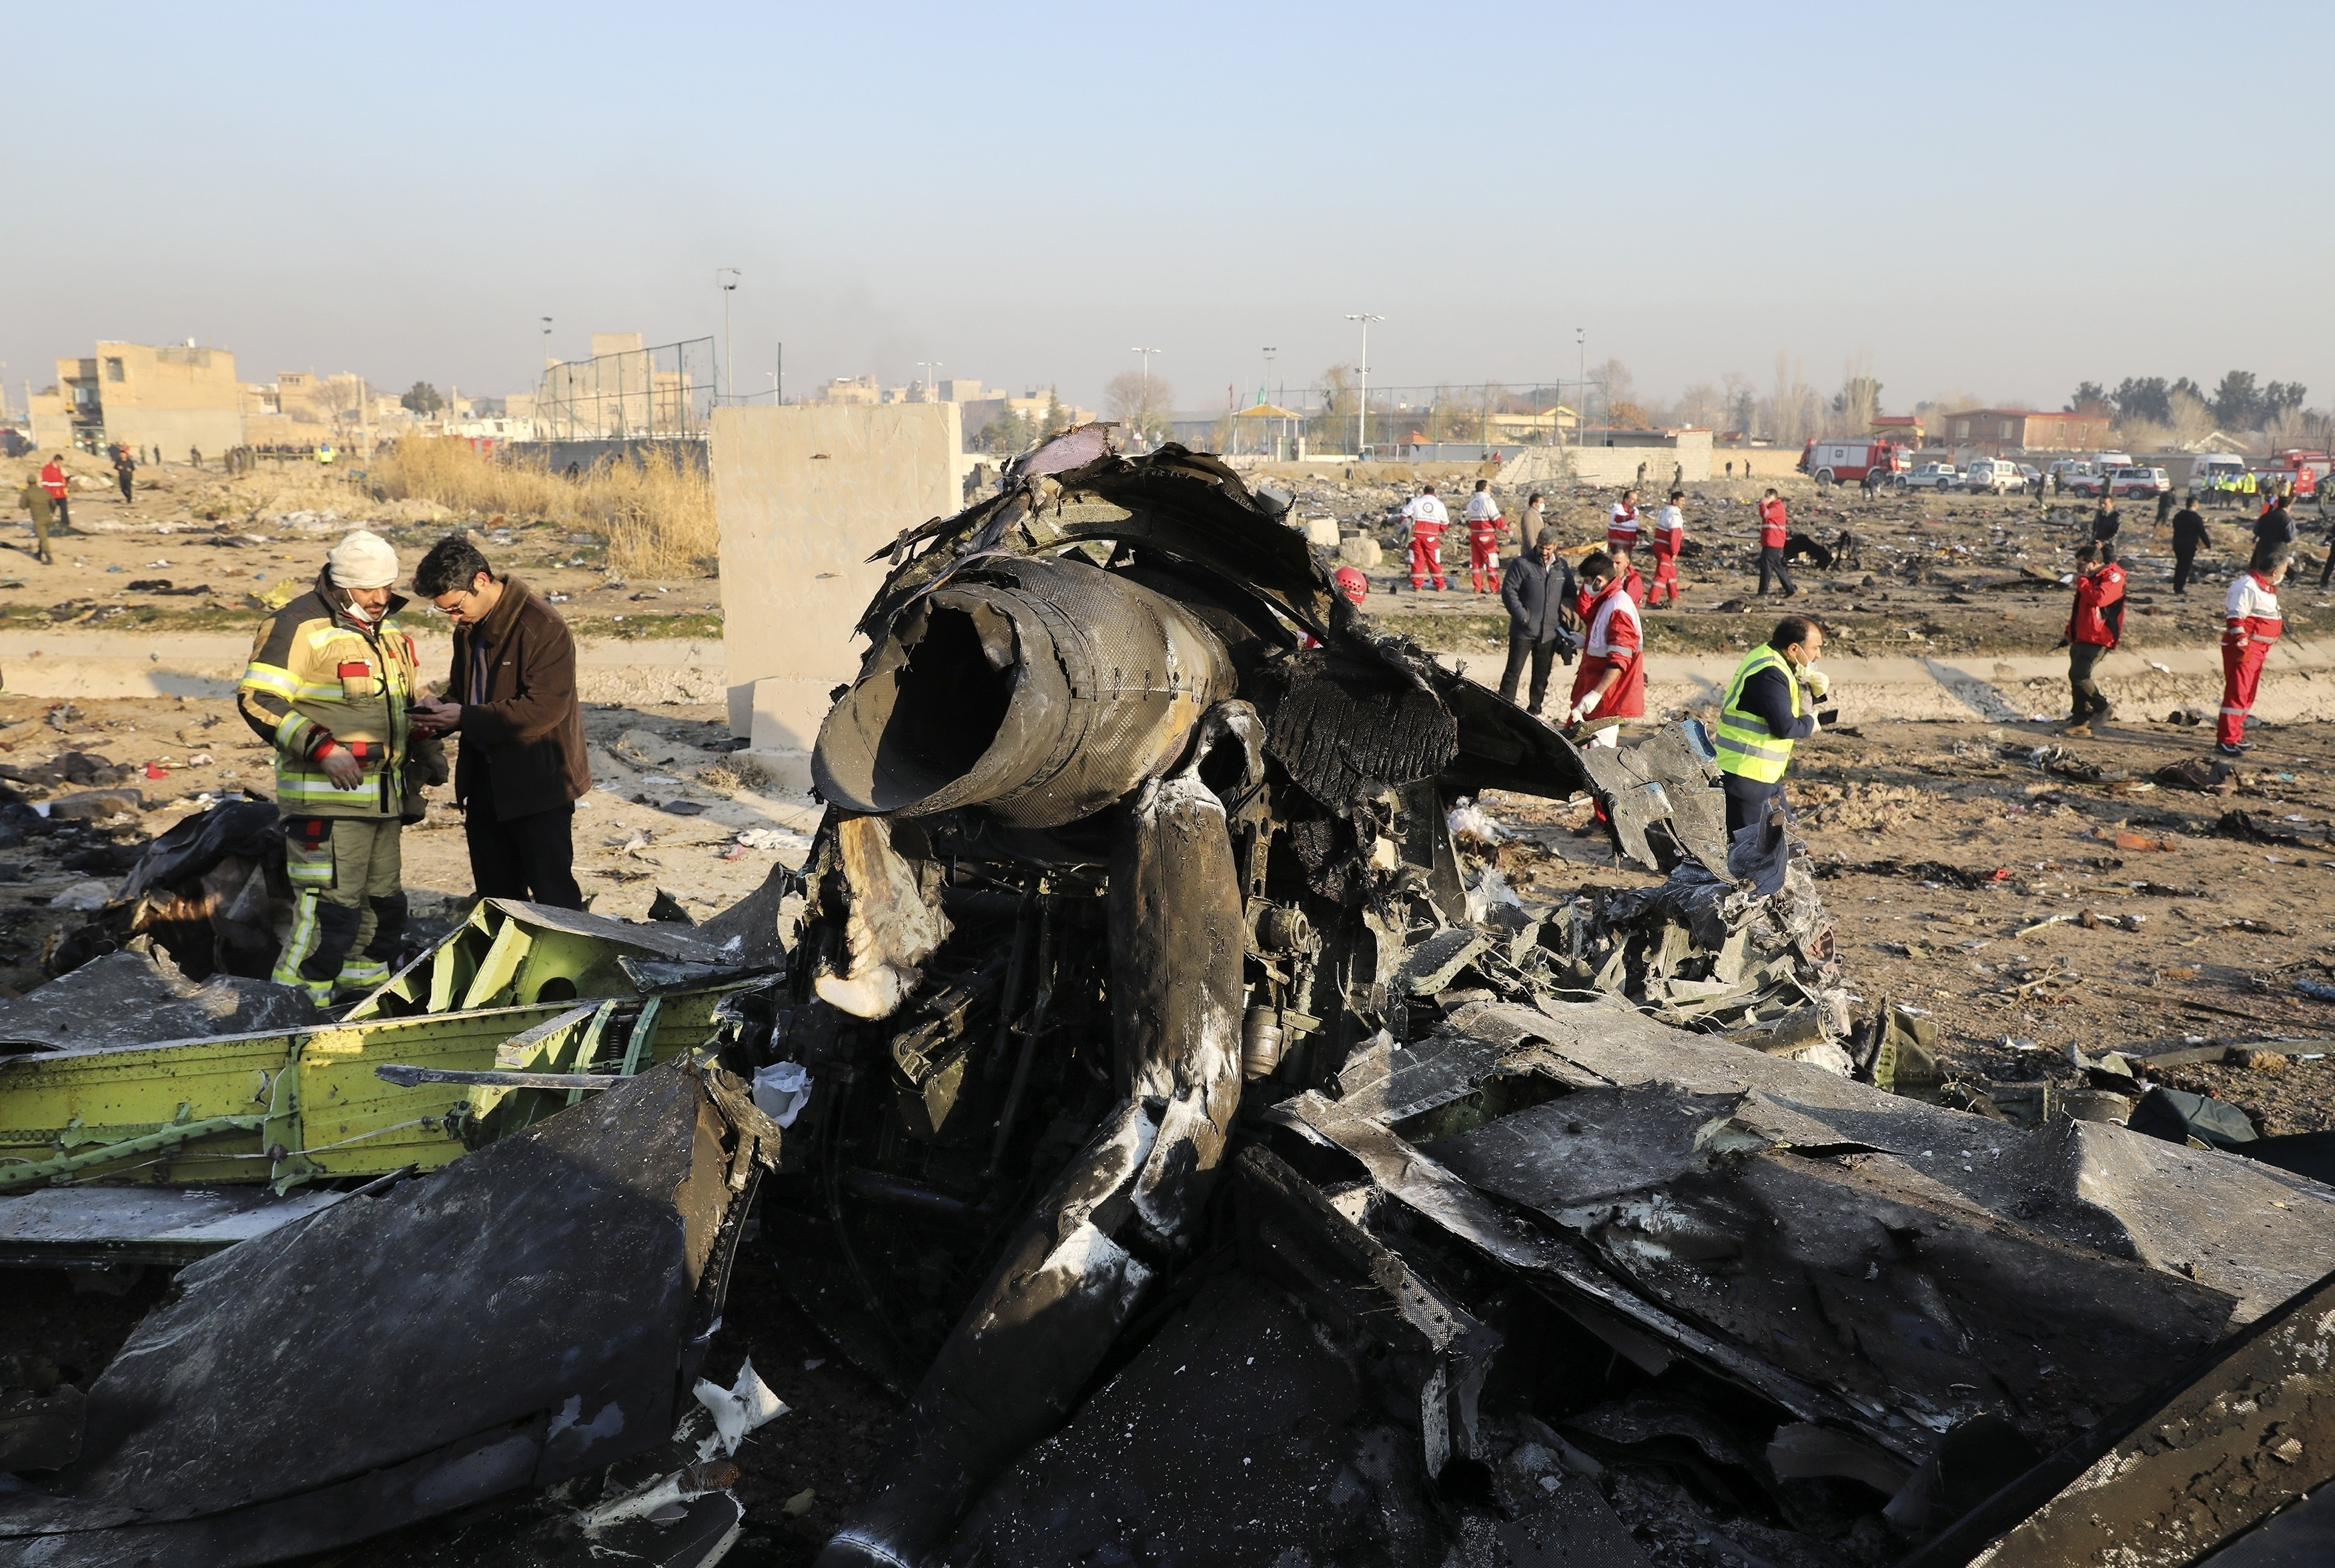 """In this Wednesday, Jan. 8, 2020 file photo, debris at the scene where a Ukrainian plane crashed in Shahedshahr southwest of the capital Tehran, Iran. Iran announced Saturday, Jan. 11, that its military """"unintentionally"""" shot down the Ukrainian jetliner that crashed earlier this week, killing all 176 aboard, after the government had repeatedly denied Western accusations that it was responsible."""